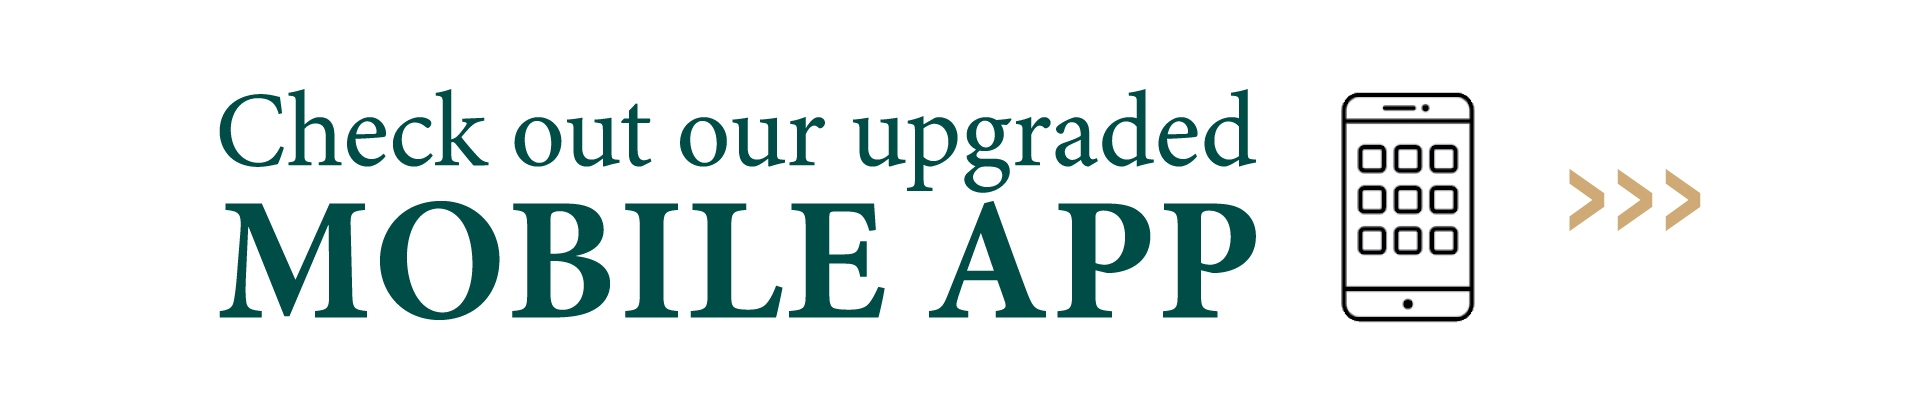 Check out our upgraded mobile app! Banner